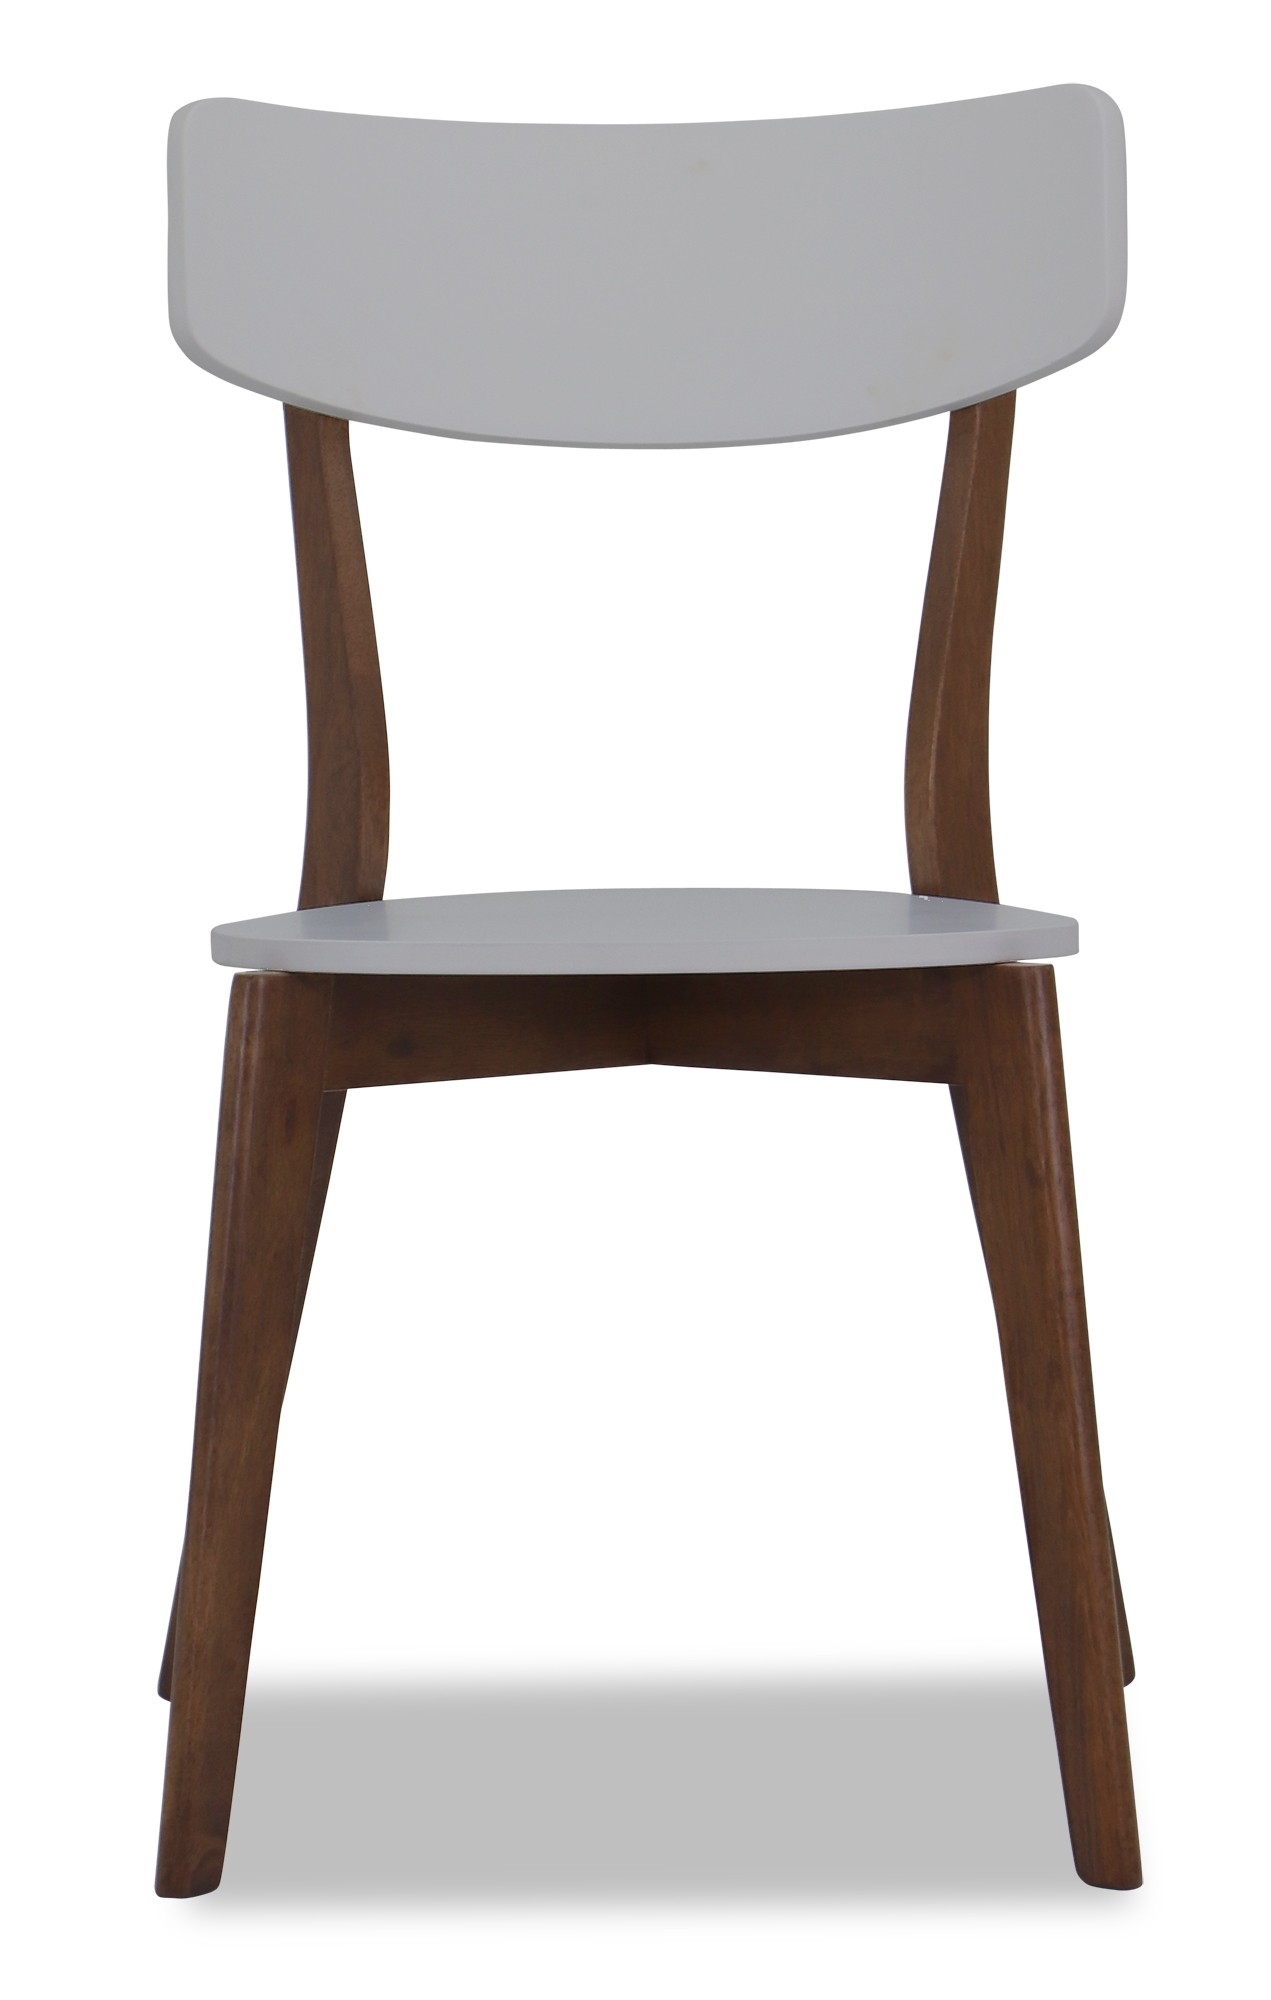 Claire Dining Chair Walnut with Grey Chairs Seating  : 1597dwalgrey1 from www.fortytwo.sg size 1271 x 2000 jpeg 104kB